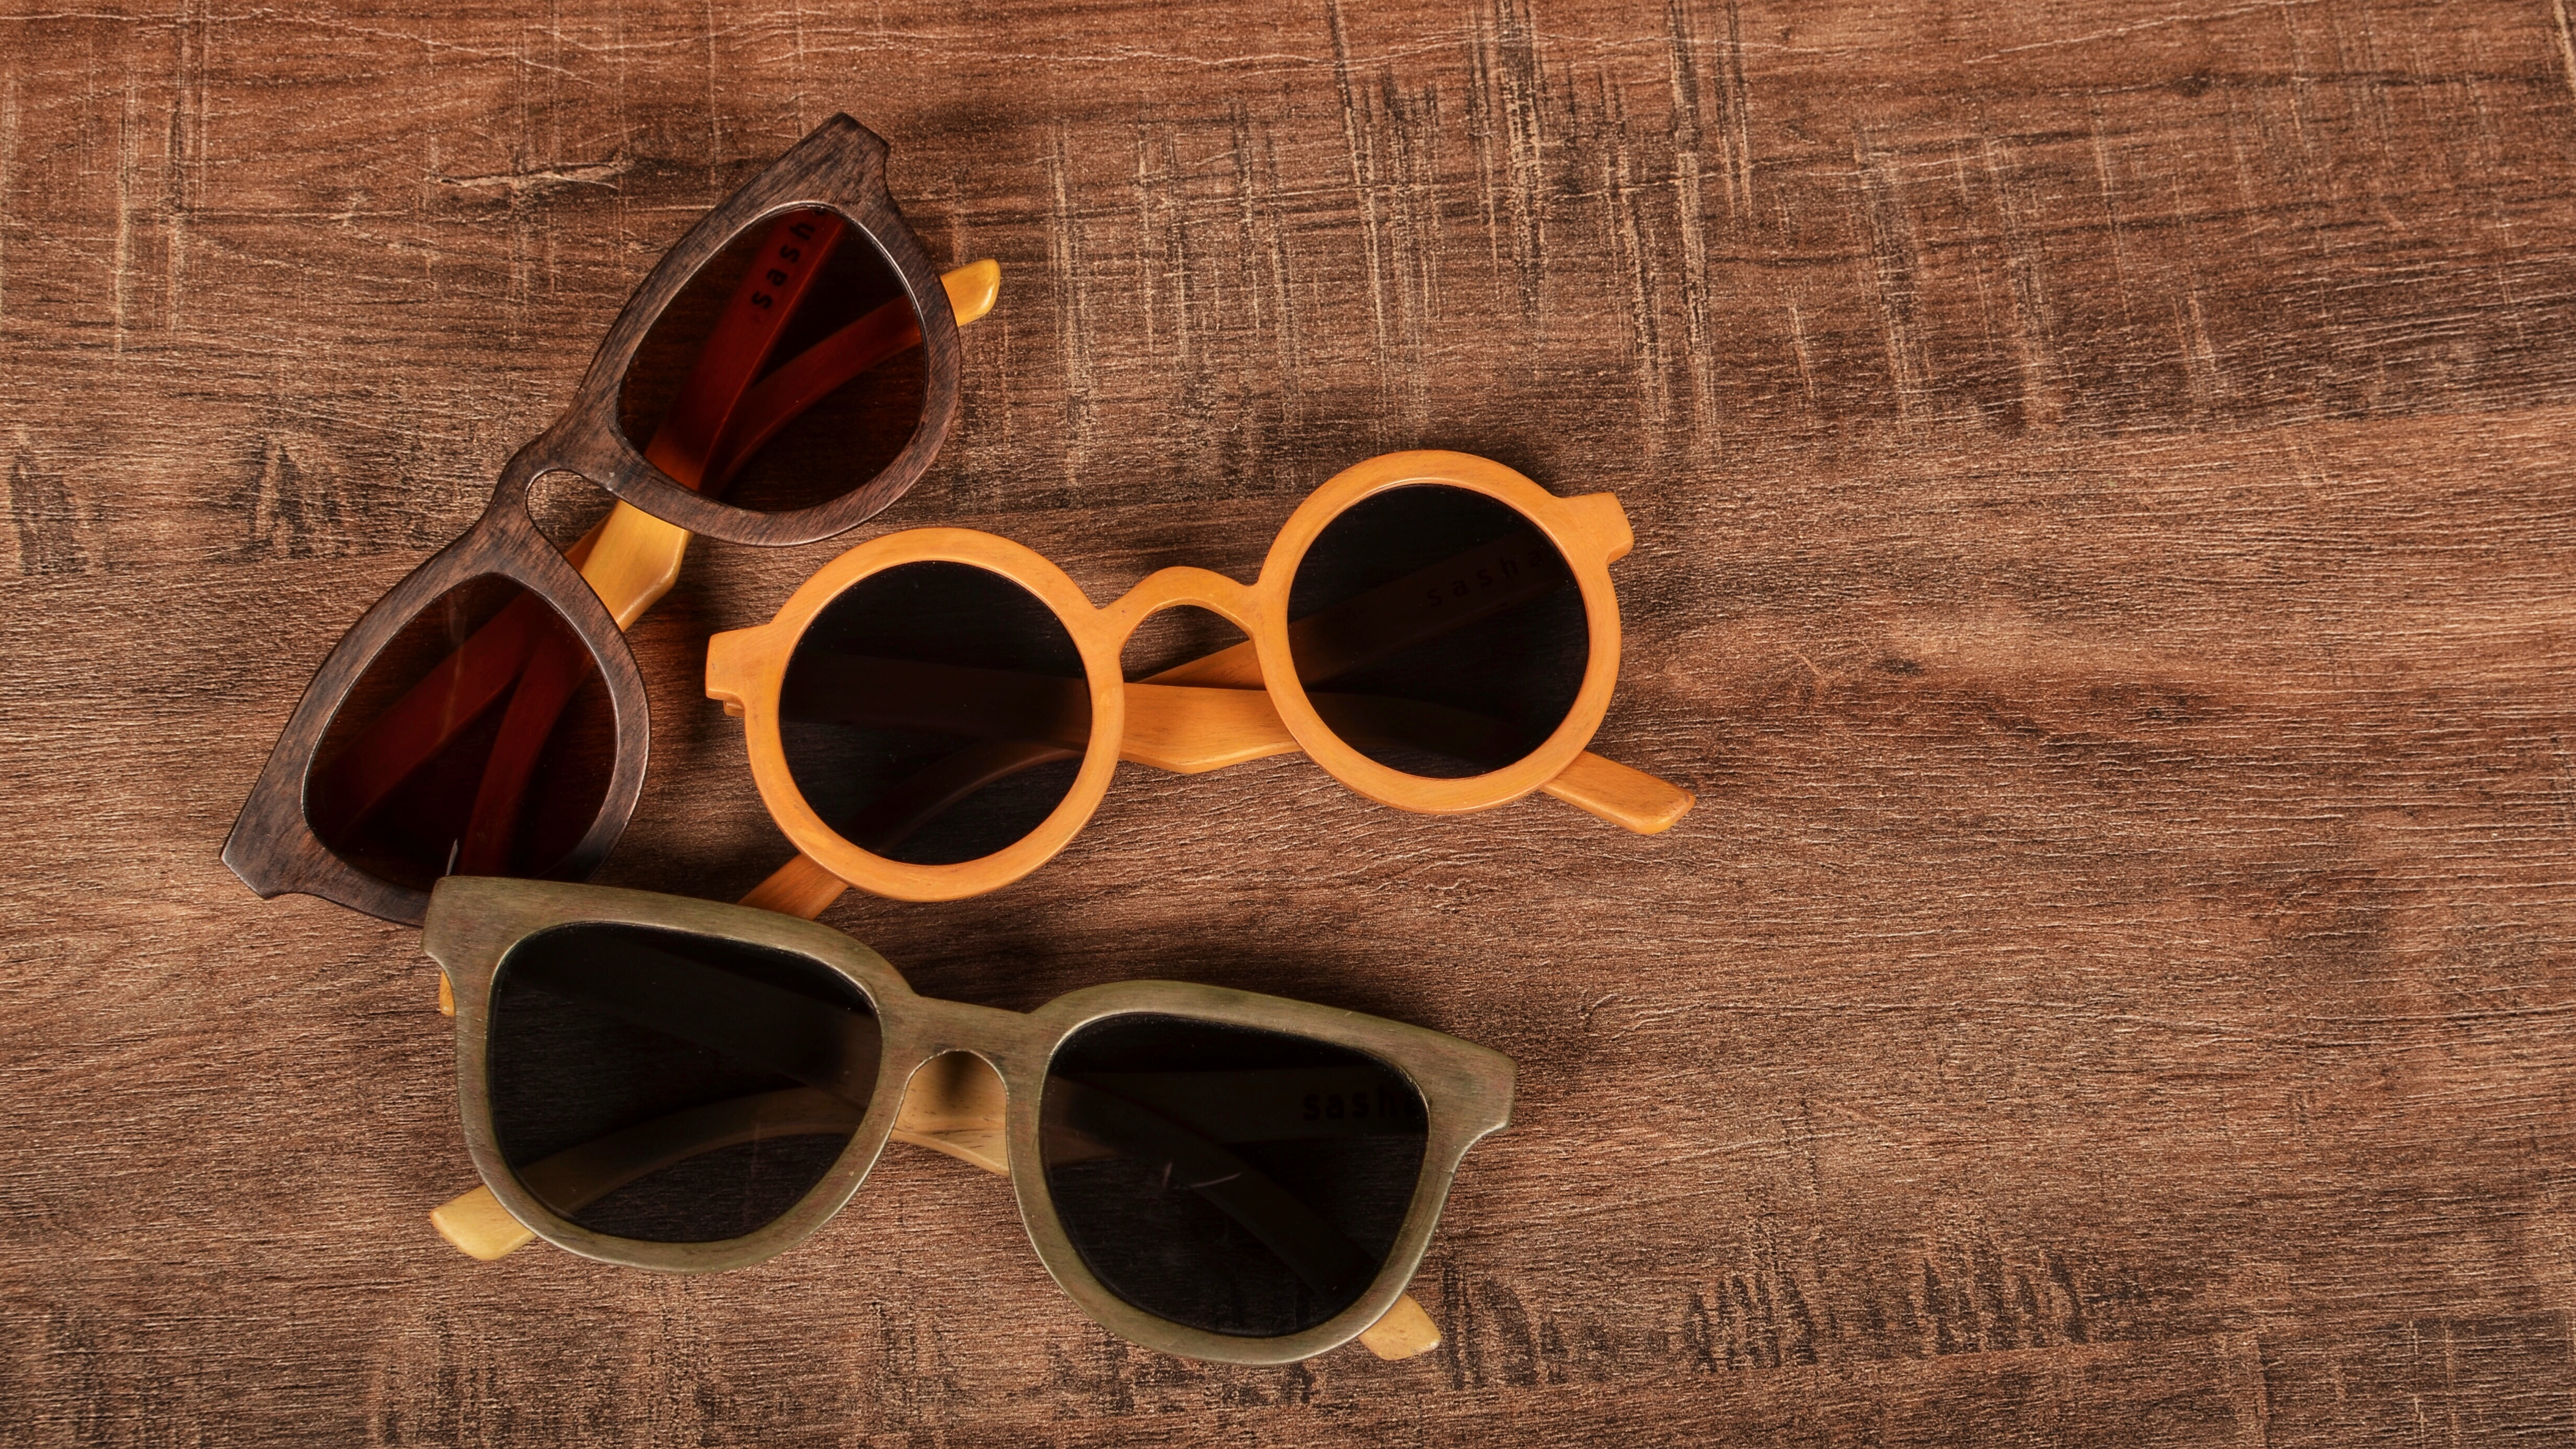 13a2b2c5e3 Sasha Wooden Sunglasses - Indian Eyewear indie brand for handmade,  sustainable accessories